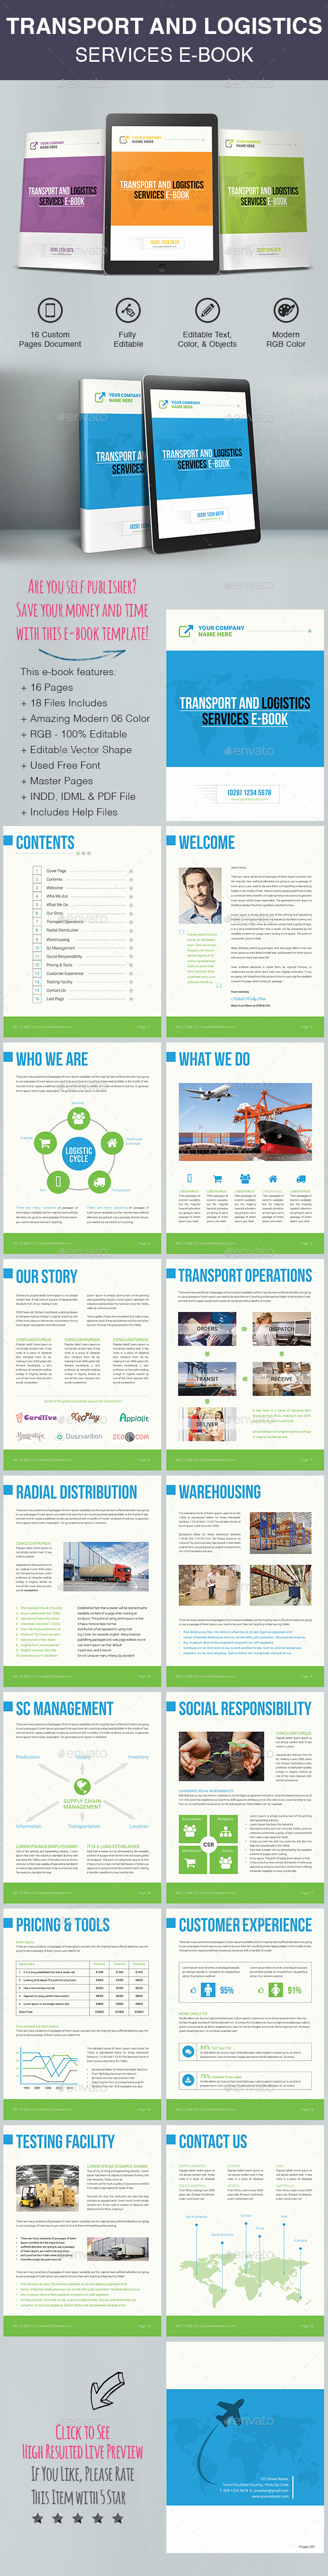 Transport And Logistics Services E-Book - ePublishing